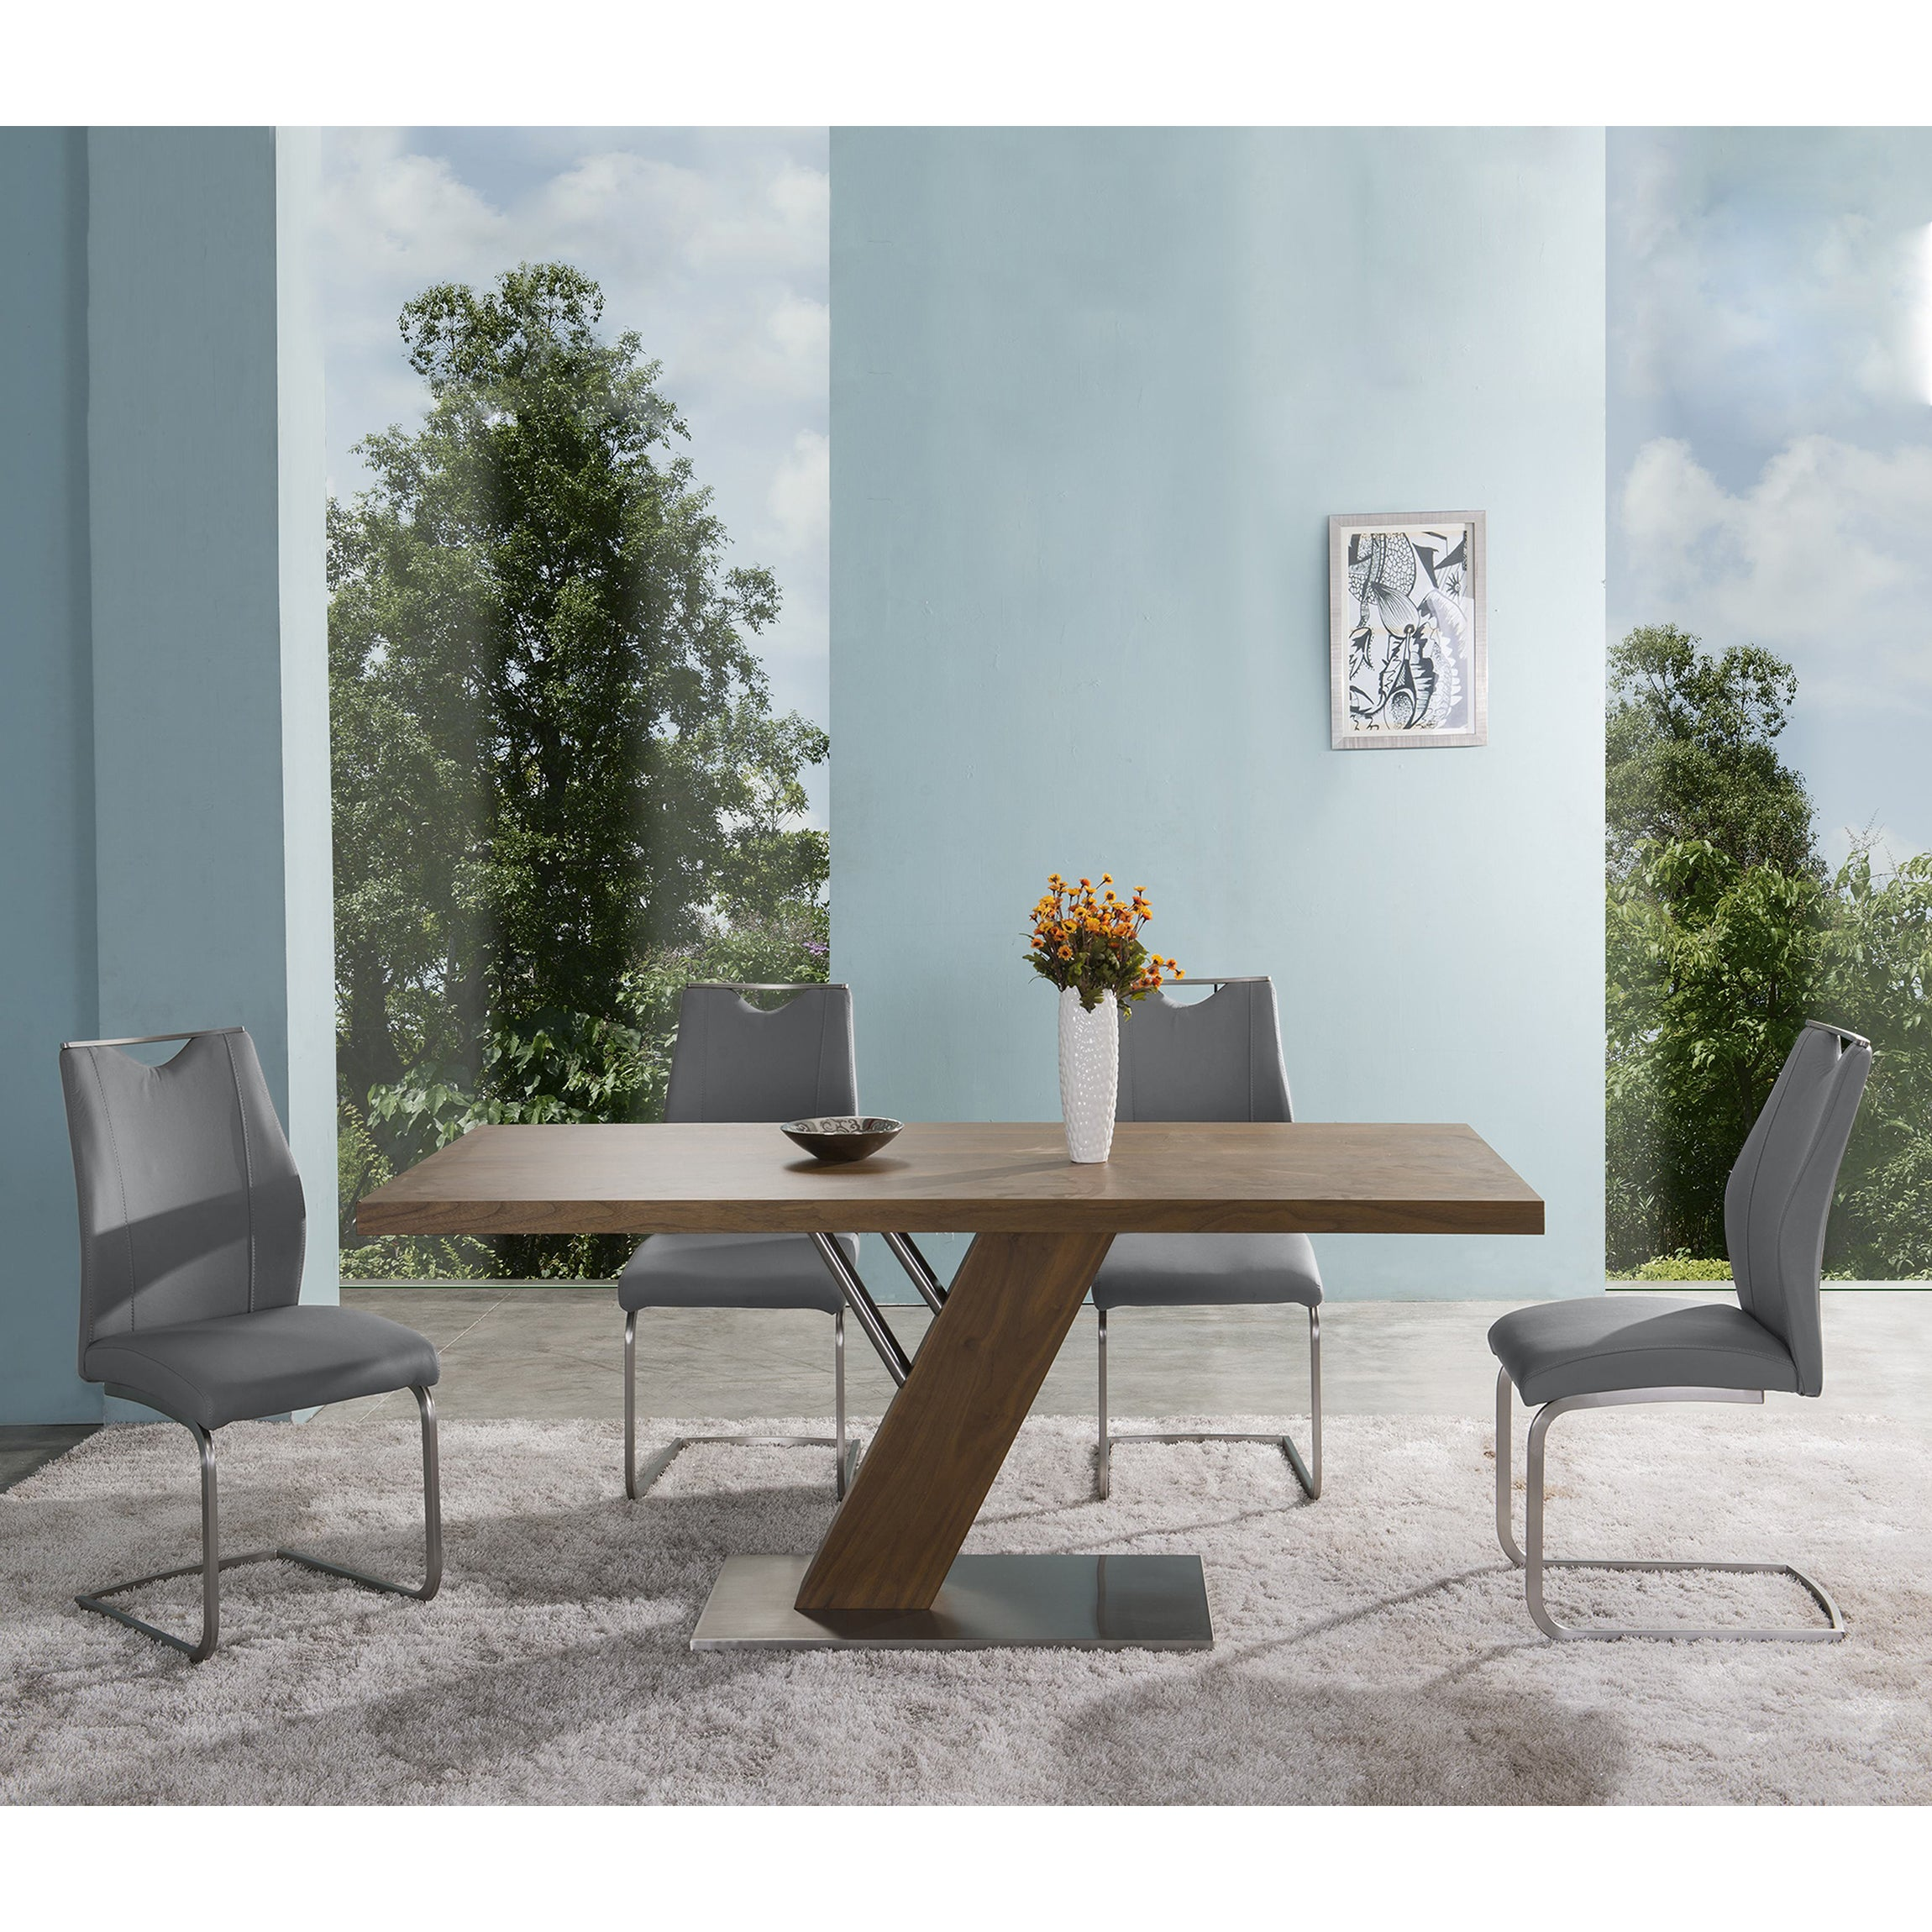 Shop Armen Living Bravo Grey Faux Leather and Stainless Steel Dining ...